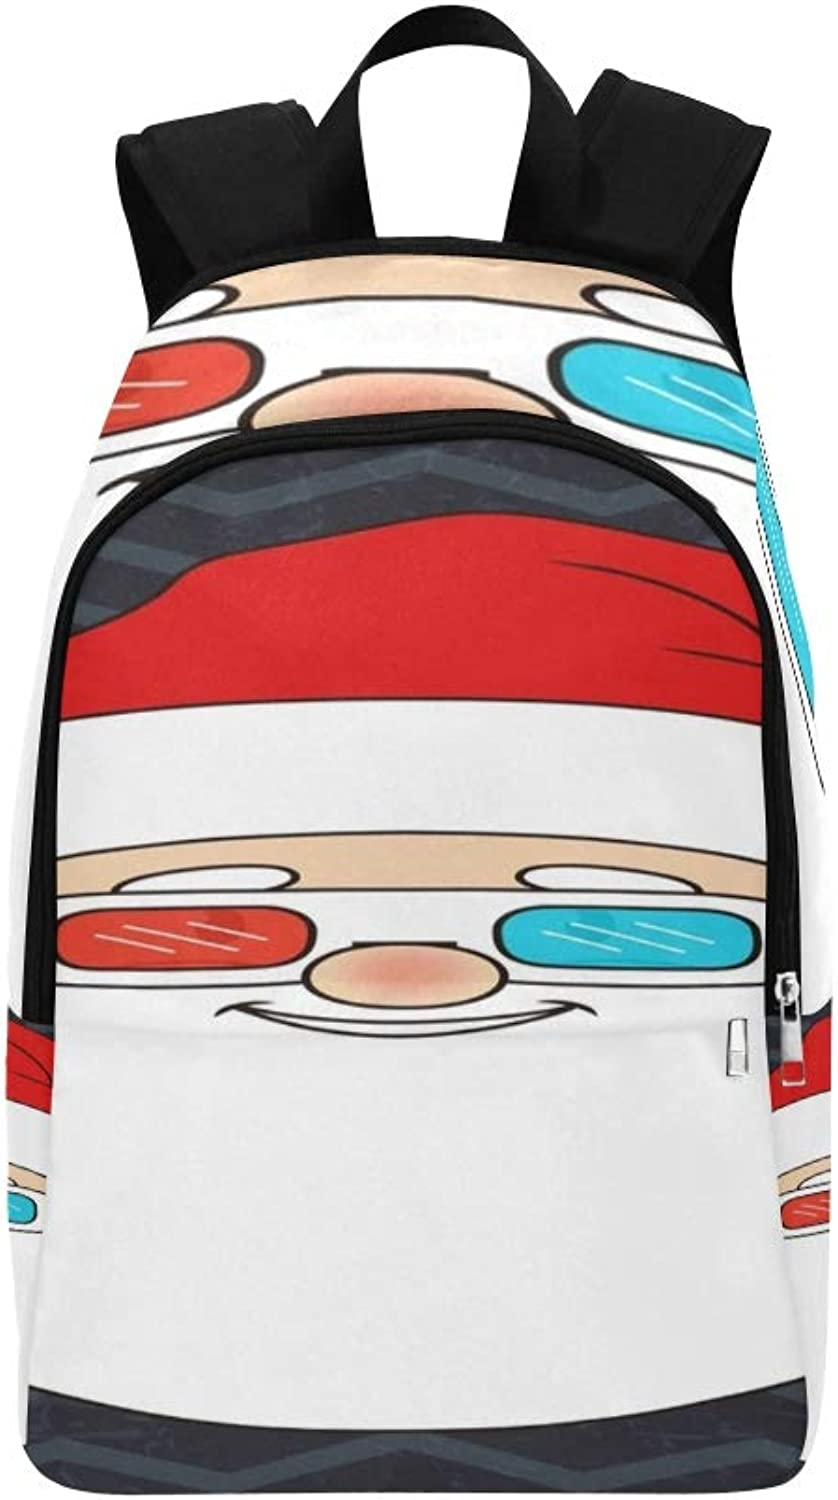 Raster Copy Smiling Santa Claus Christmas Casual Daypack Travel Bag College School Backpack for Mens and Women